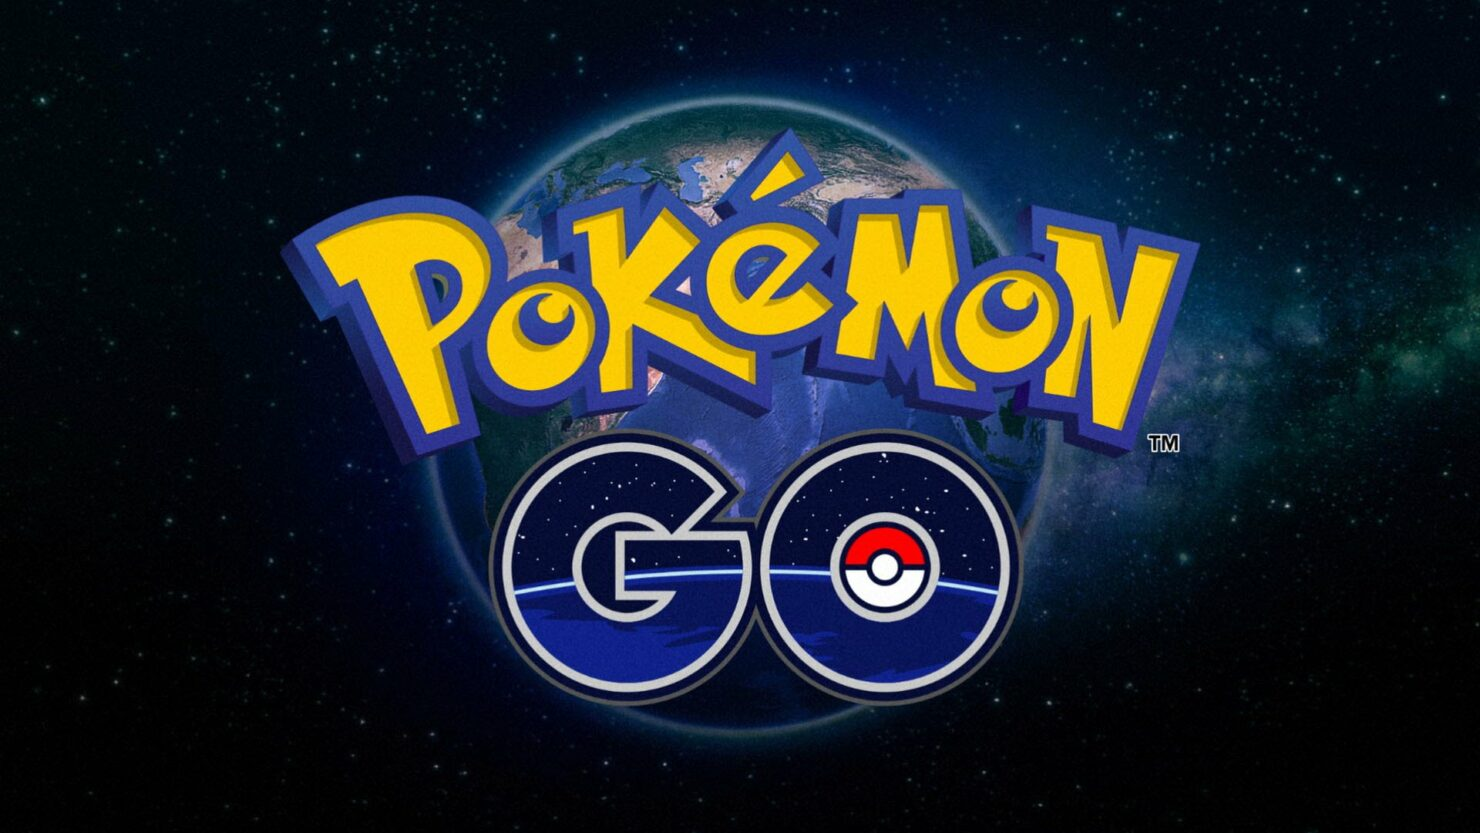 Pokémon GO Session Leads Wanted Man To A Police Station